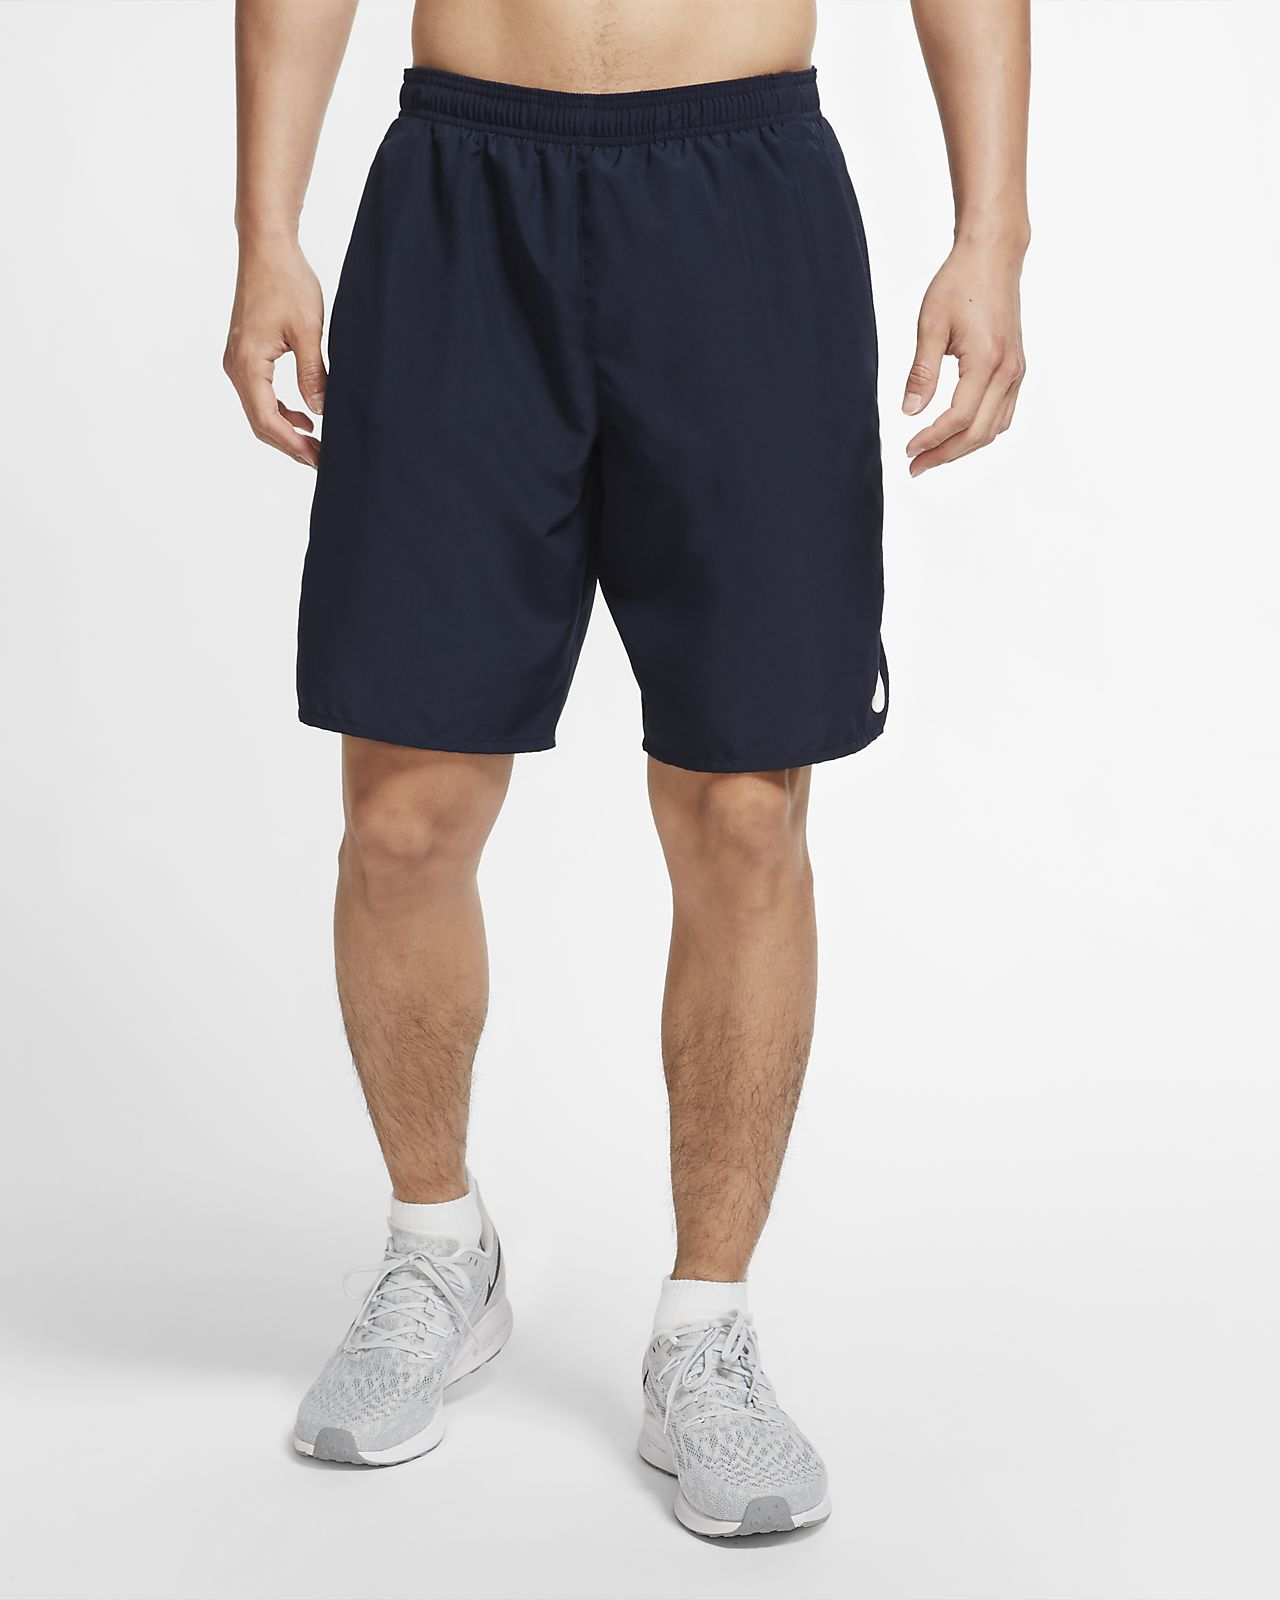 Nike Challenger Men's 23cm (approx.) Brief-Lined Running Shorts